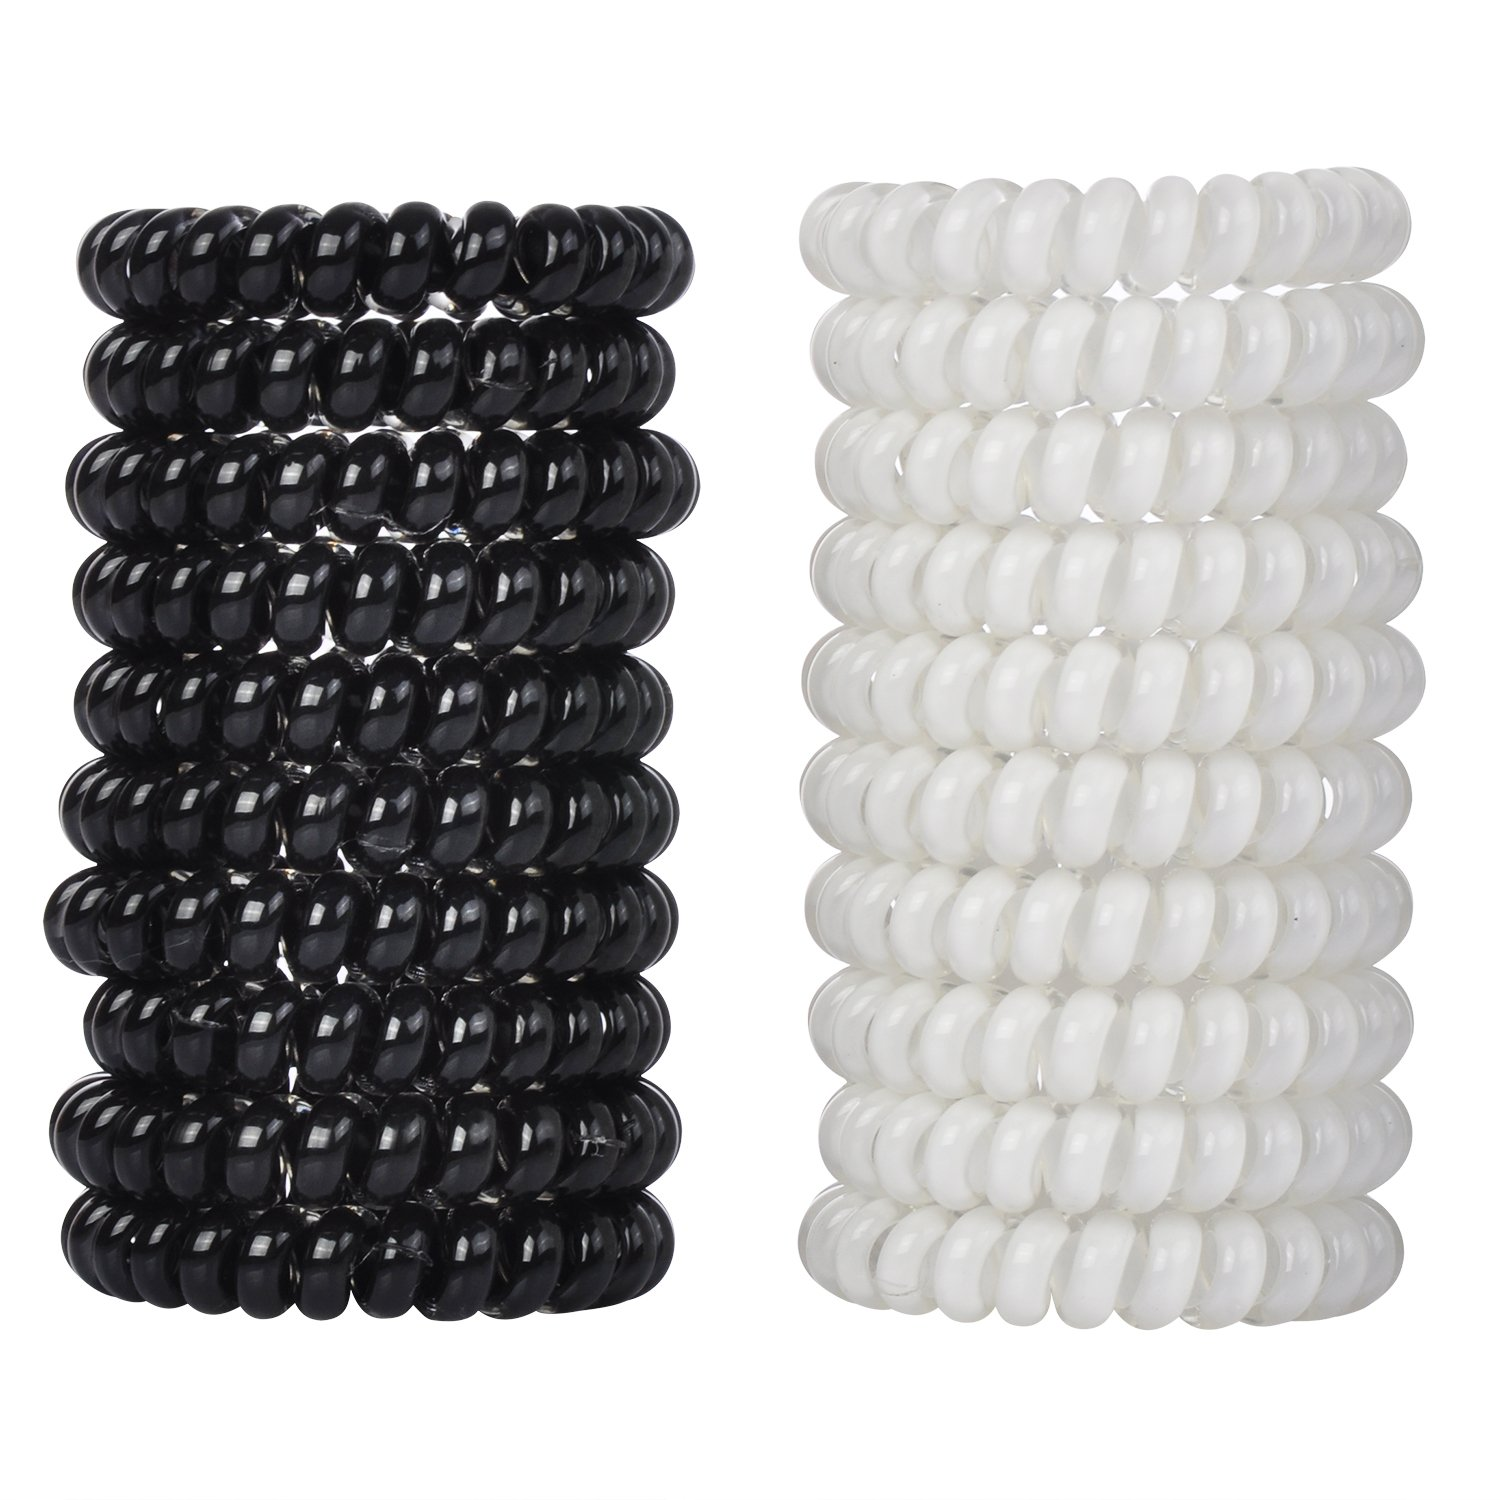 LucyGod 20 PCS No Crease Spiral Hair Ties Spiral Coil Hair Elastics No Damage Hair Band Ponytail Holder, Black& White